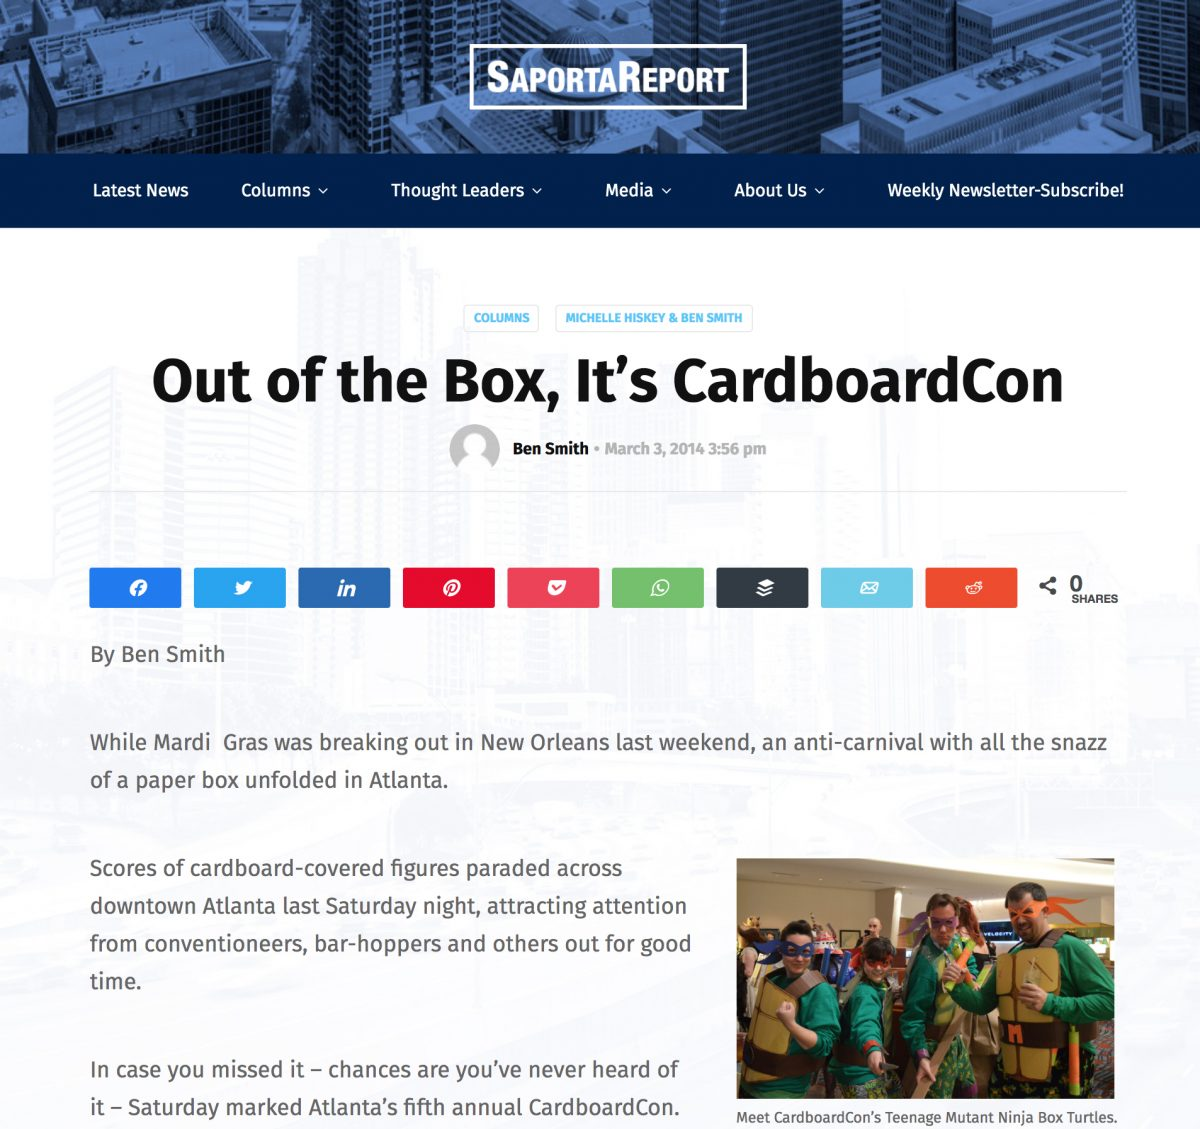 Writer Ben Smith brings readers of the Saporta Report to the glory of Cardboard*Con